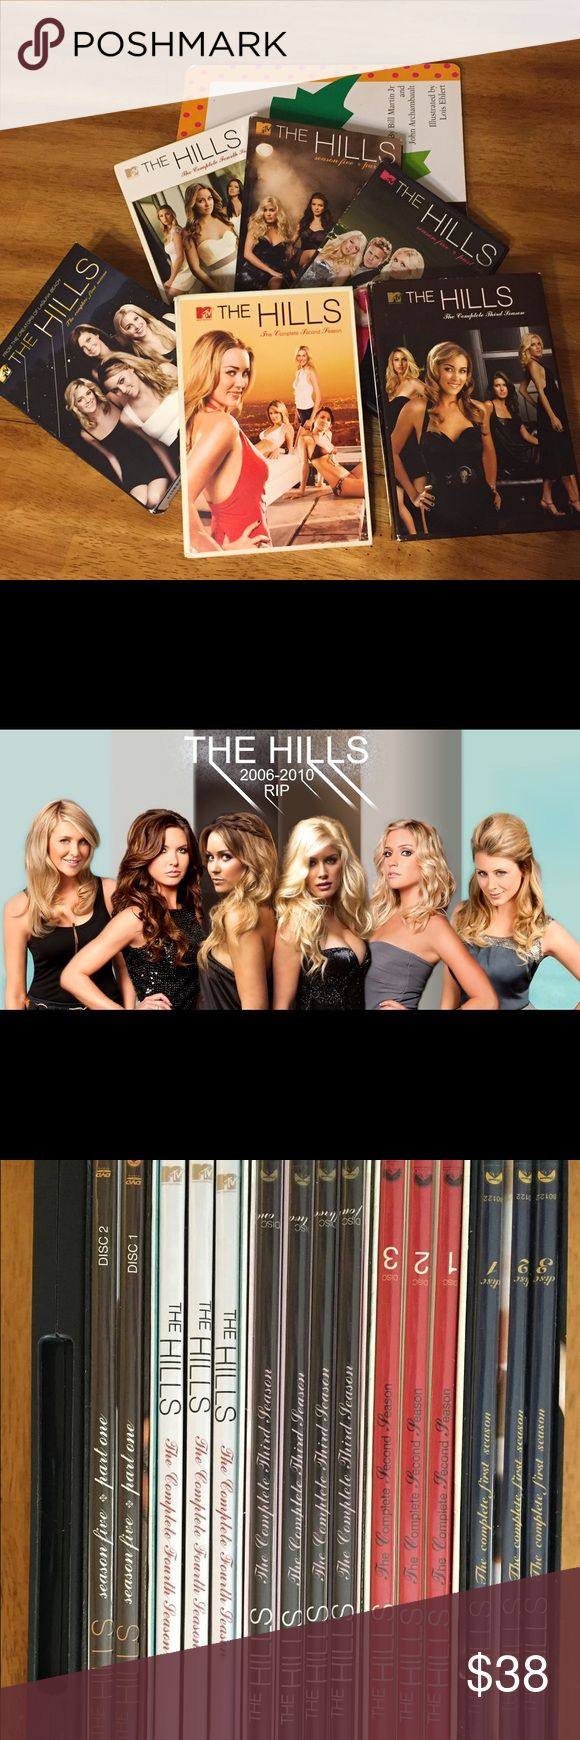 MTV's The Hills Seasons 1-5 DVDs Binge watch this Fall & Winter with MTV's The Hills Seasons 1-5 parts 1 & 2 on DVD. A show every fashionista should watch for some good catty drama 😜 One price gets every season!!💥✨💫💸Make an offer!!! You never know if you don't try!!💥✨💫💸 MTV Other